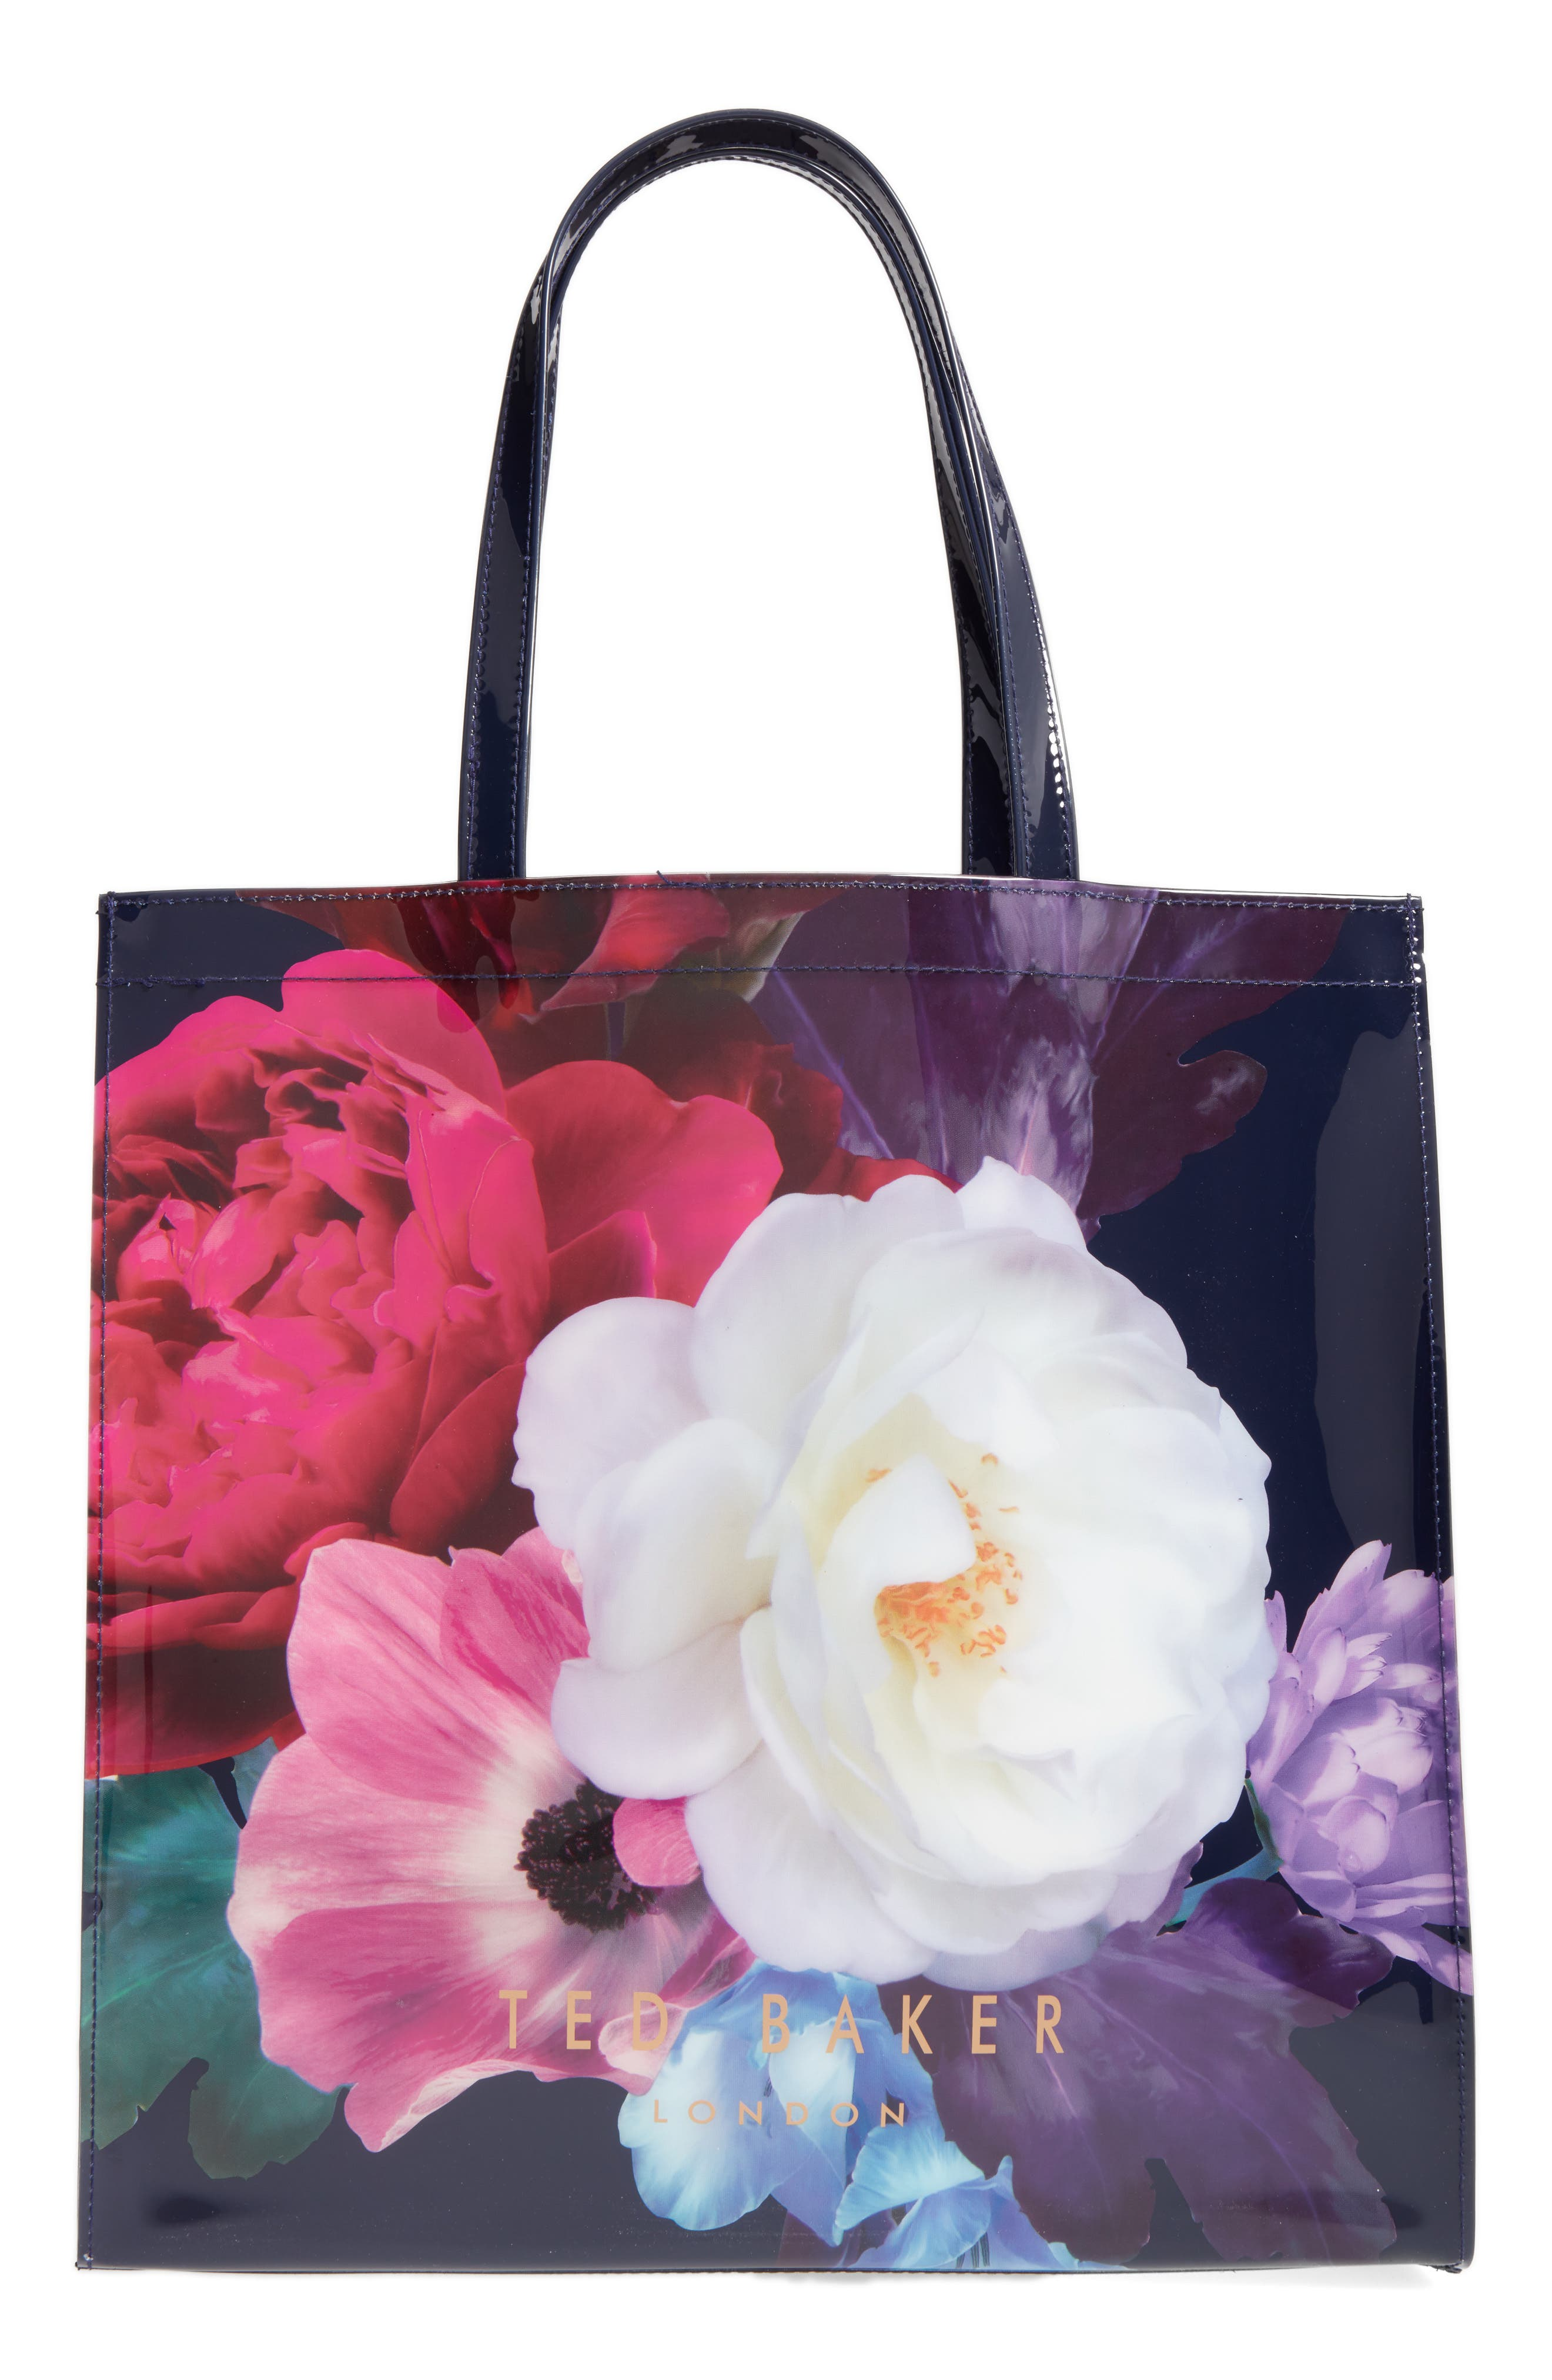 TED BAKER LONDON Blushing Bouquet Large Icon Tote, Main, color, 410